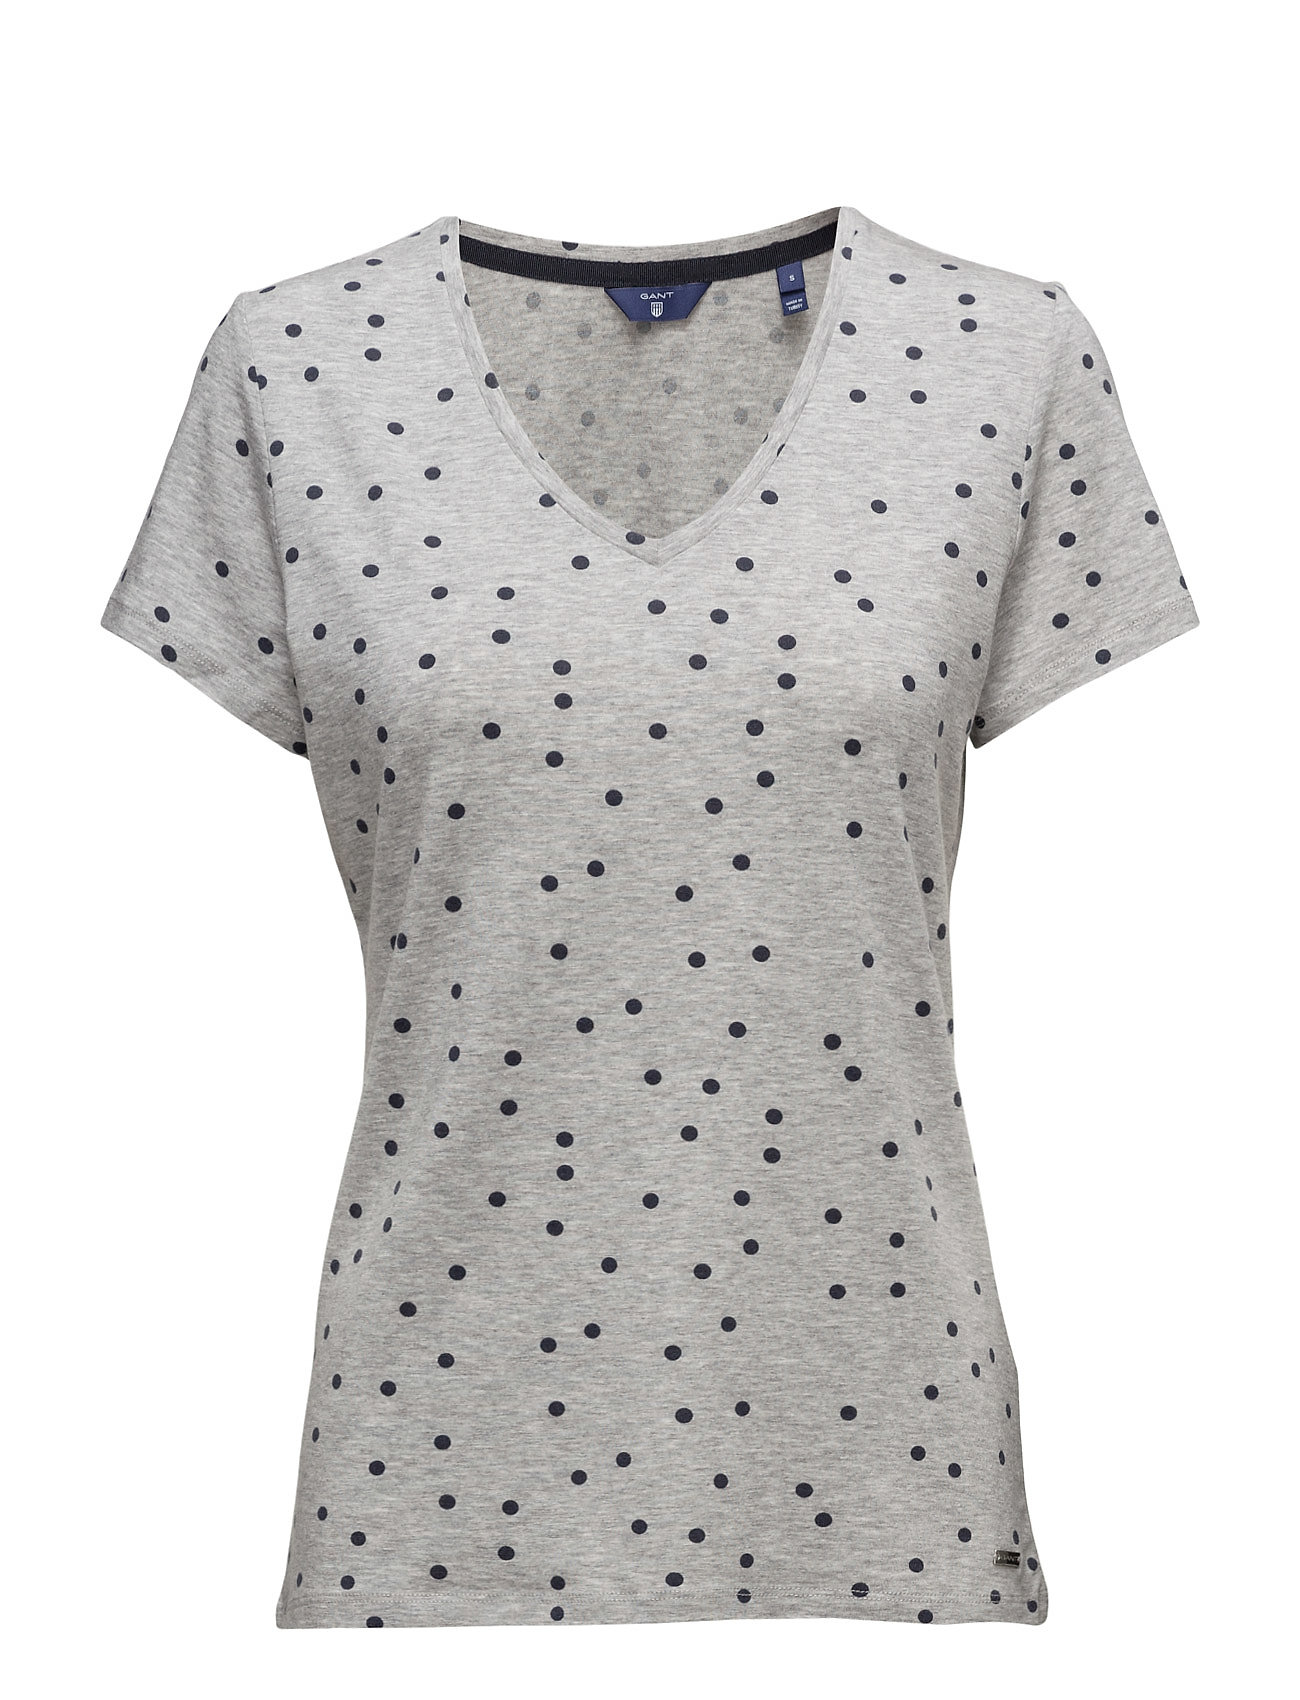 Dotted Fluid V-neck T-shirt - Light Grey Melange GANT Manchester Great Sale For Sale mrCaI9LAX